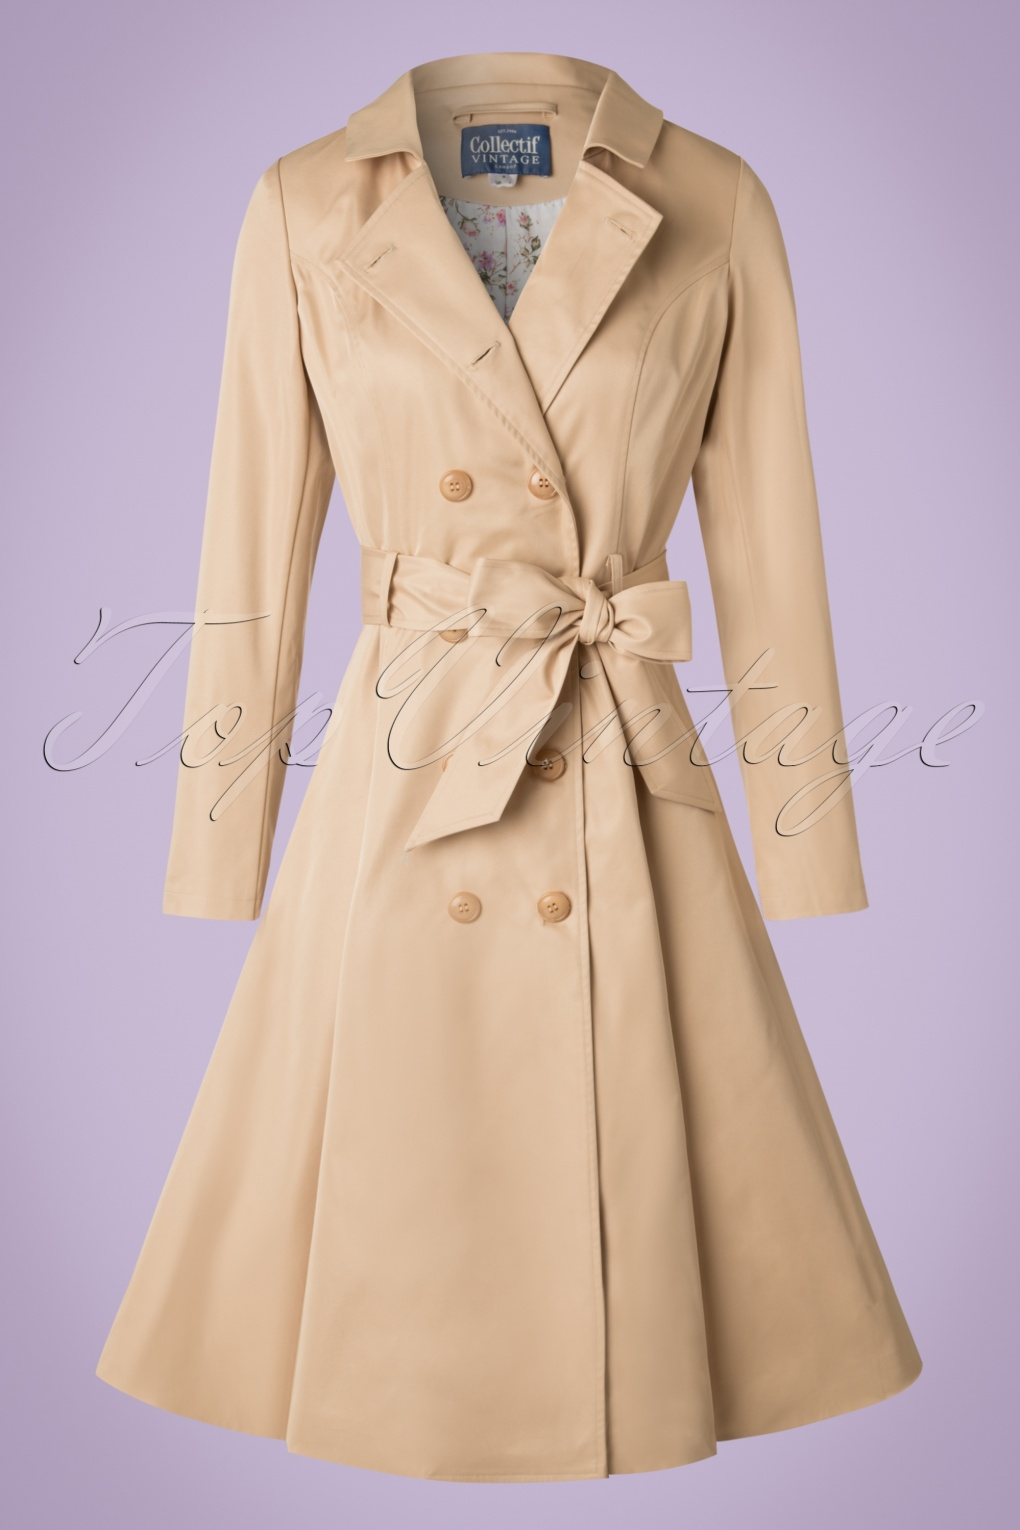 Vintage Coats & Jackets | Retro Coats and Jackets 40s Korrina Swing Trench Coat in Beige £131.44 AT vintagedancer.com